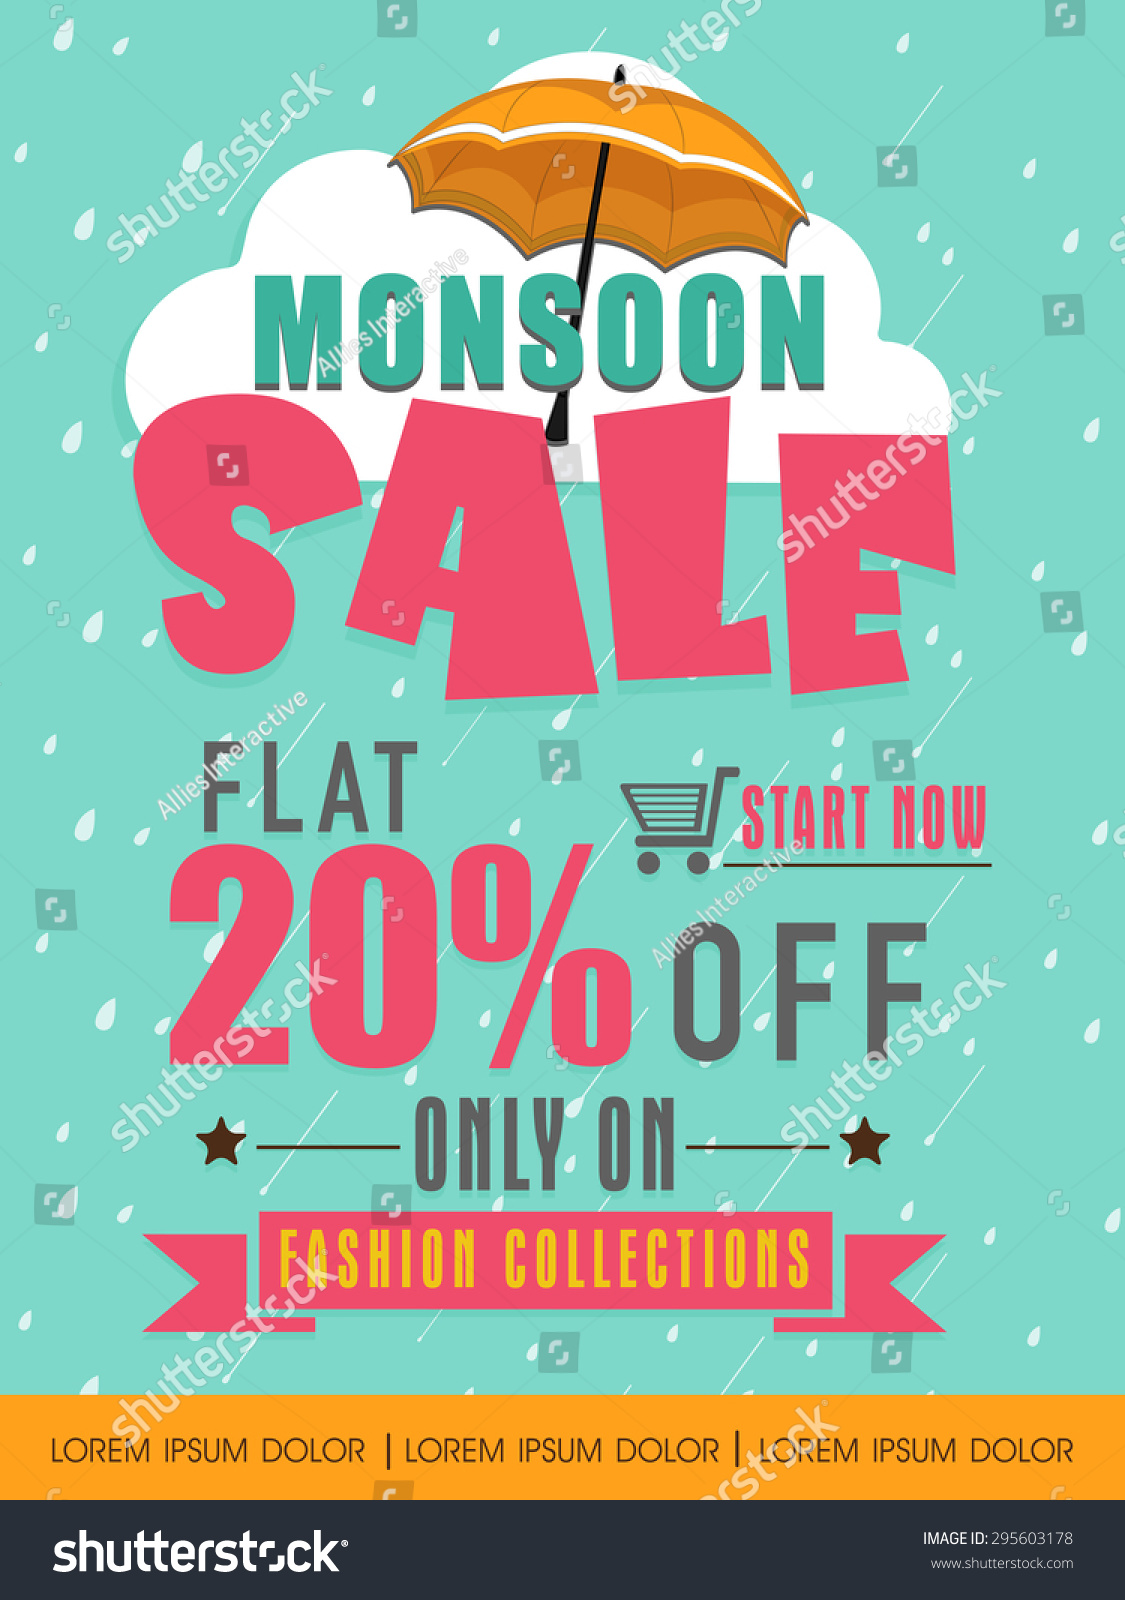 Monsoon Sale Flat 20 Discount Offer Vector 295603178 – Sale Flyer Design